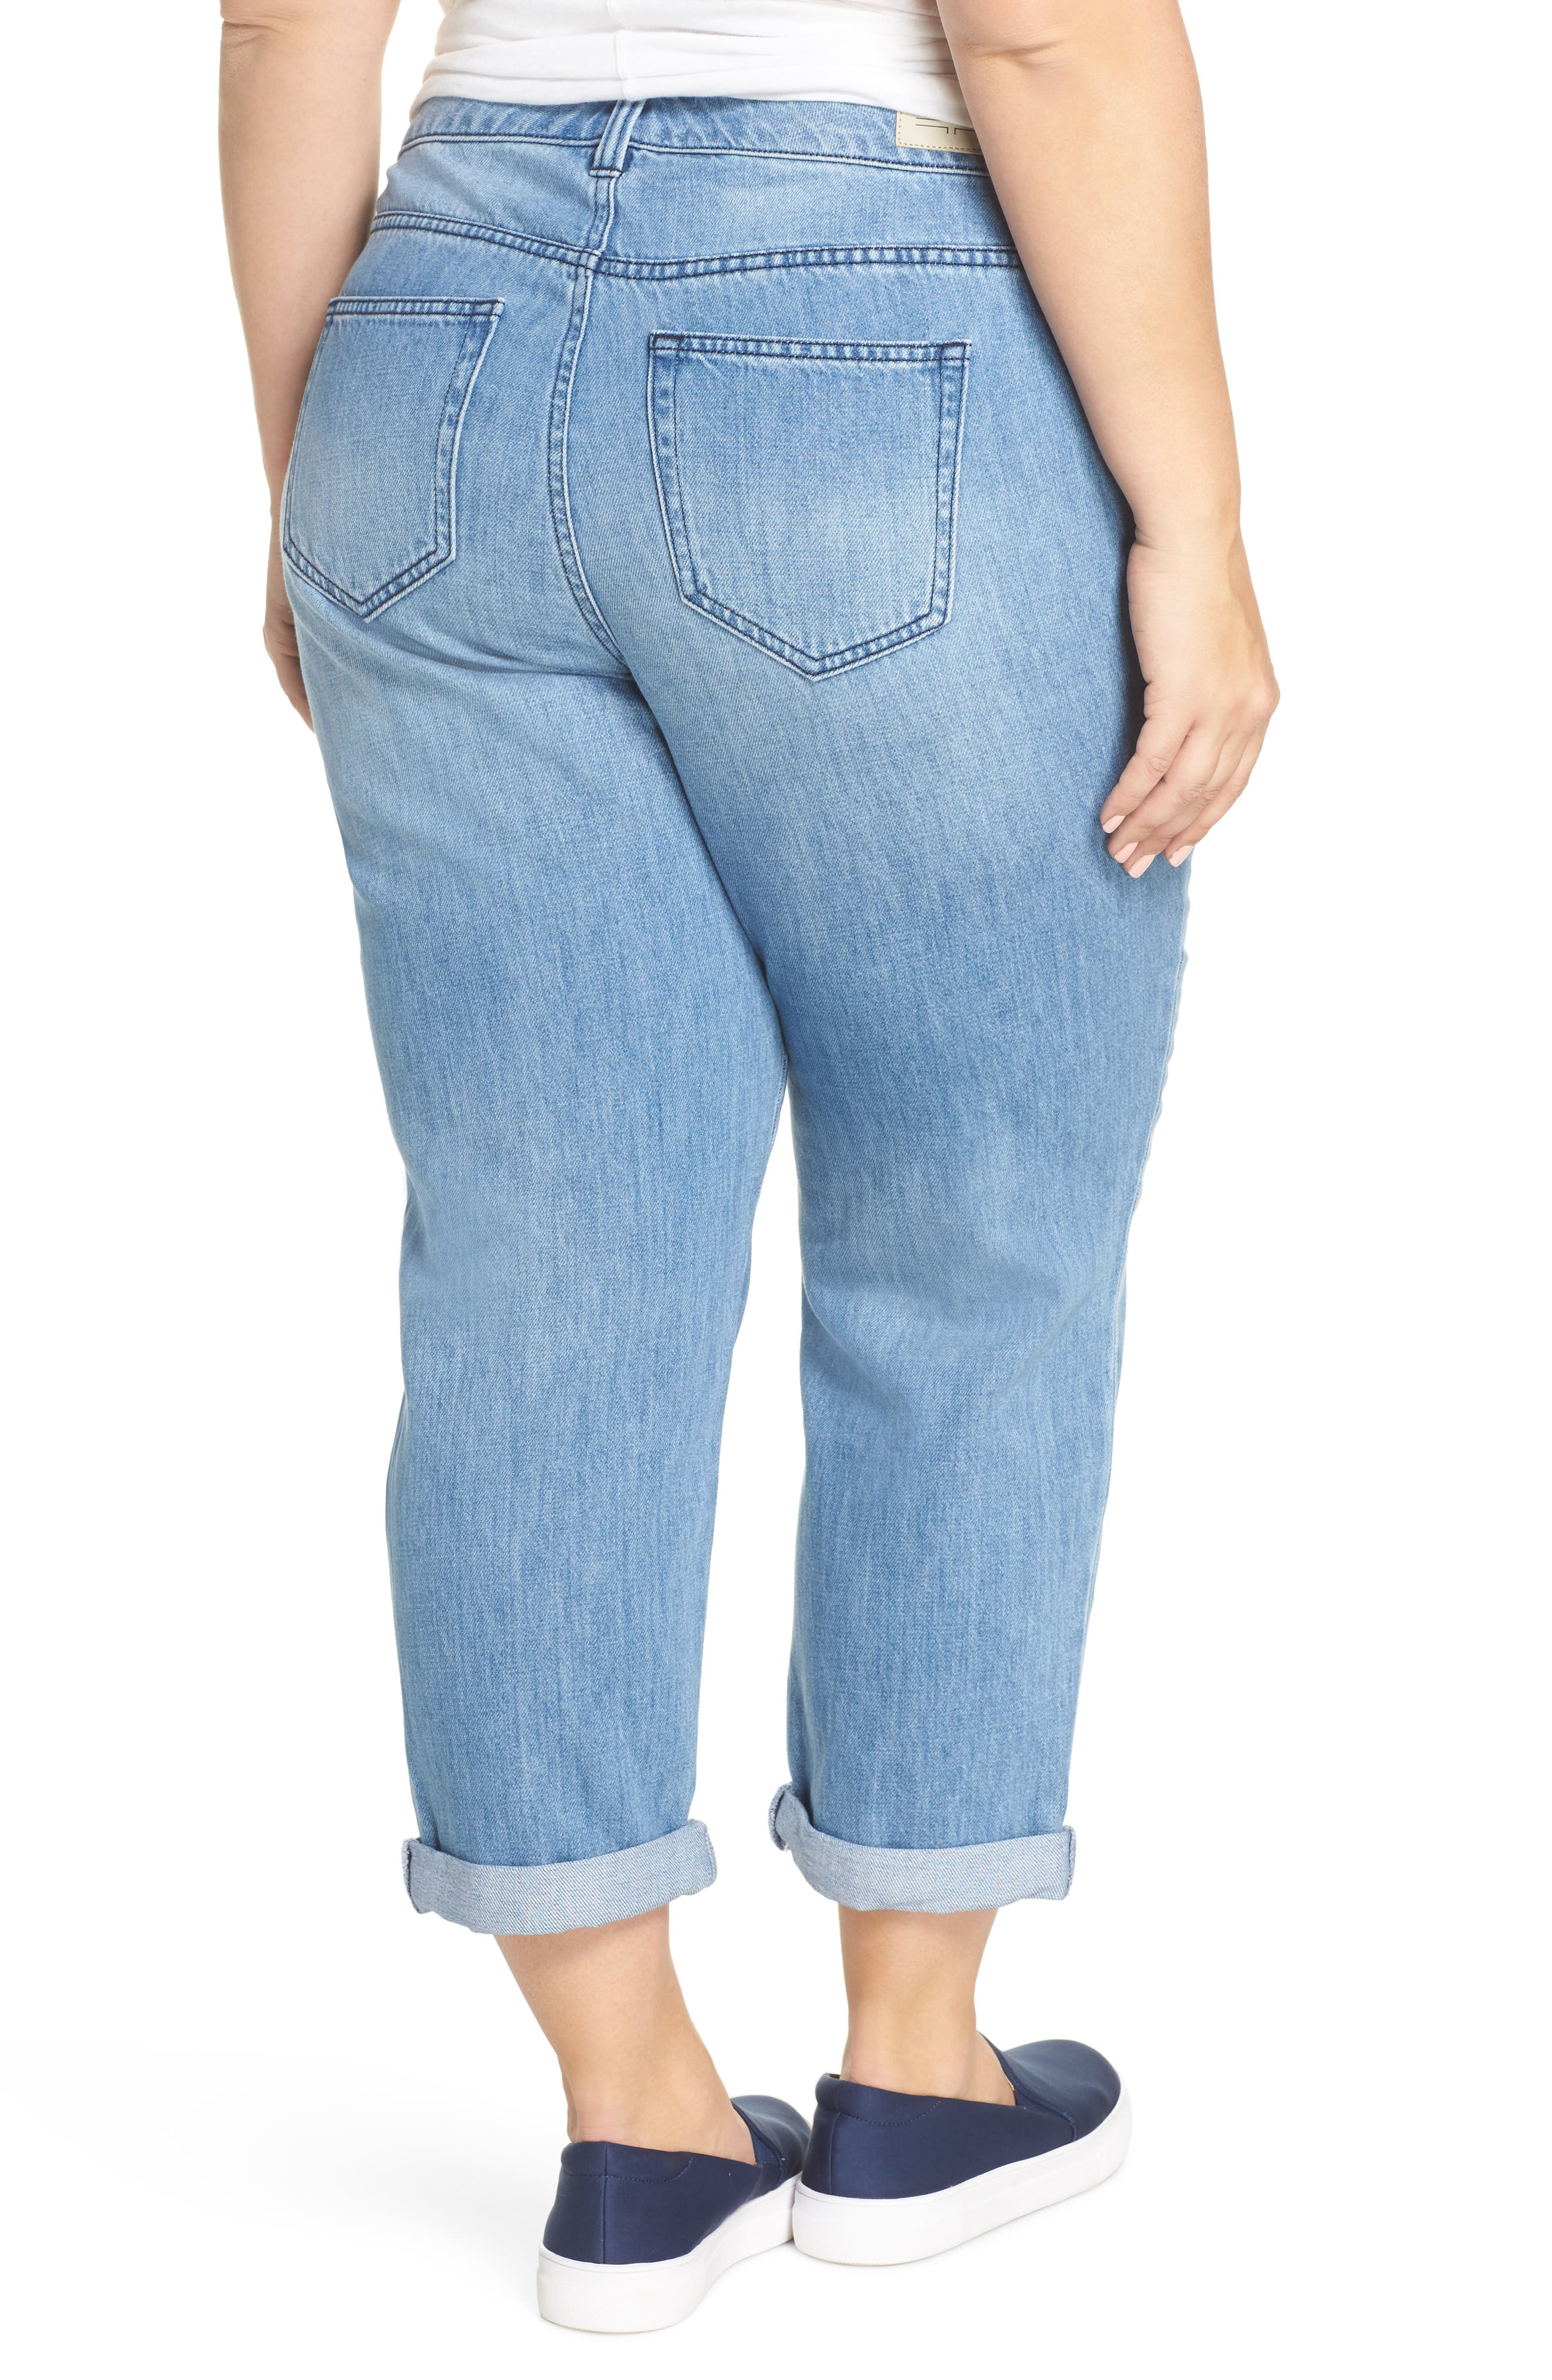 Cameron Crop Boyfriend Jeans,                             Alternate thumbnail 2, color,